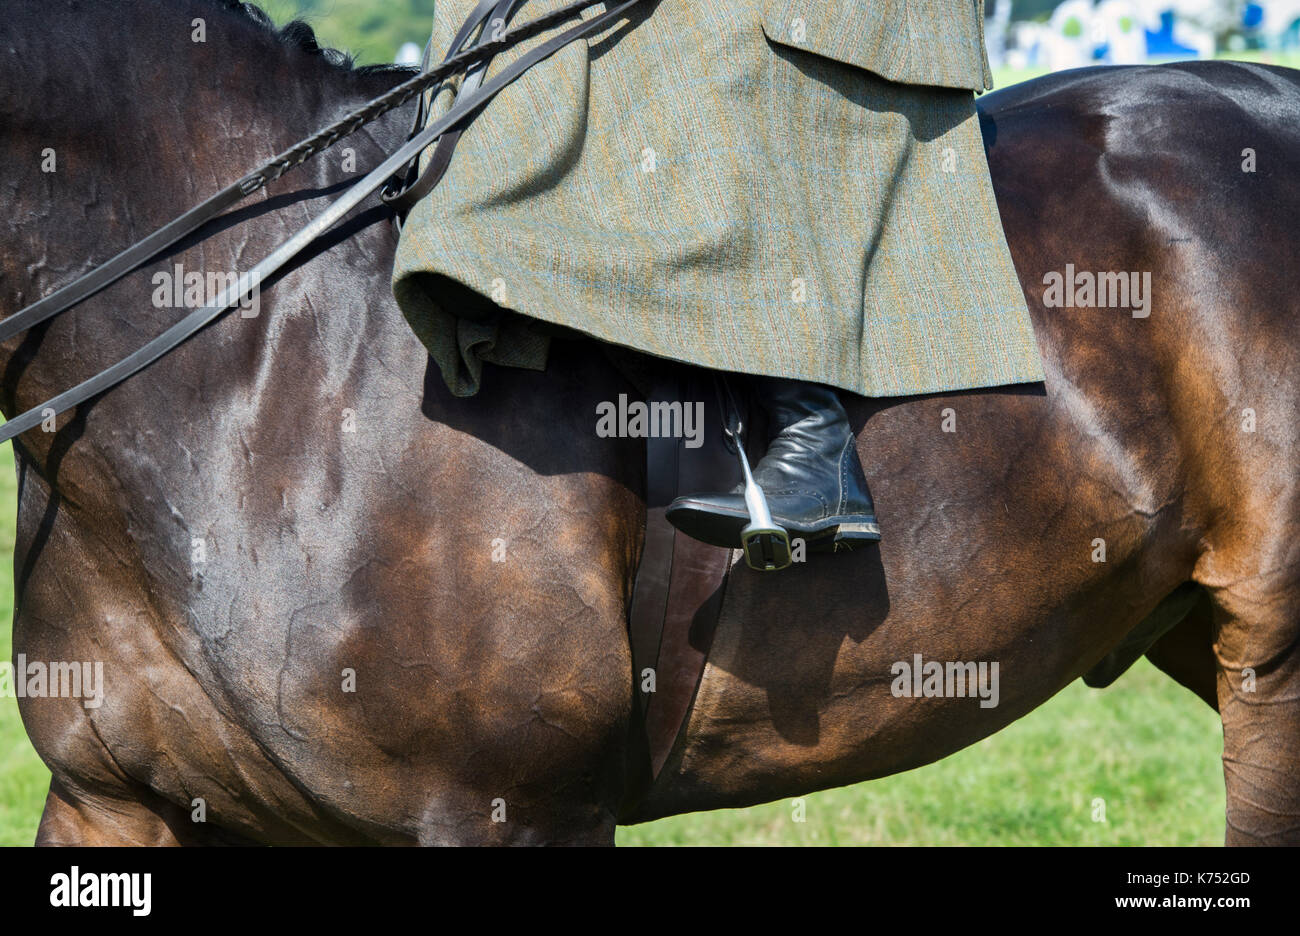 Riding boot stirup abstract. Woman riding sidesaddle on her horse at at Moreton in Marsh country show, Cotswolds, Gloucestershire, UK - Stock Image